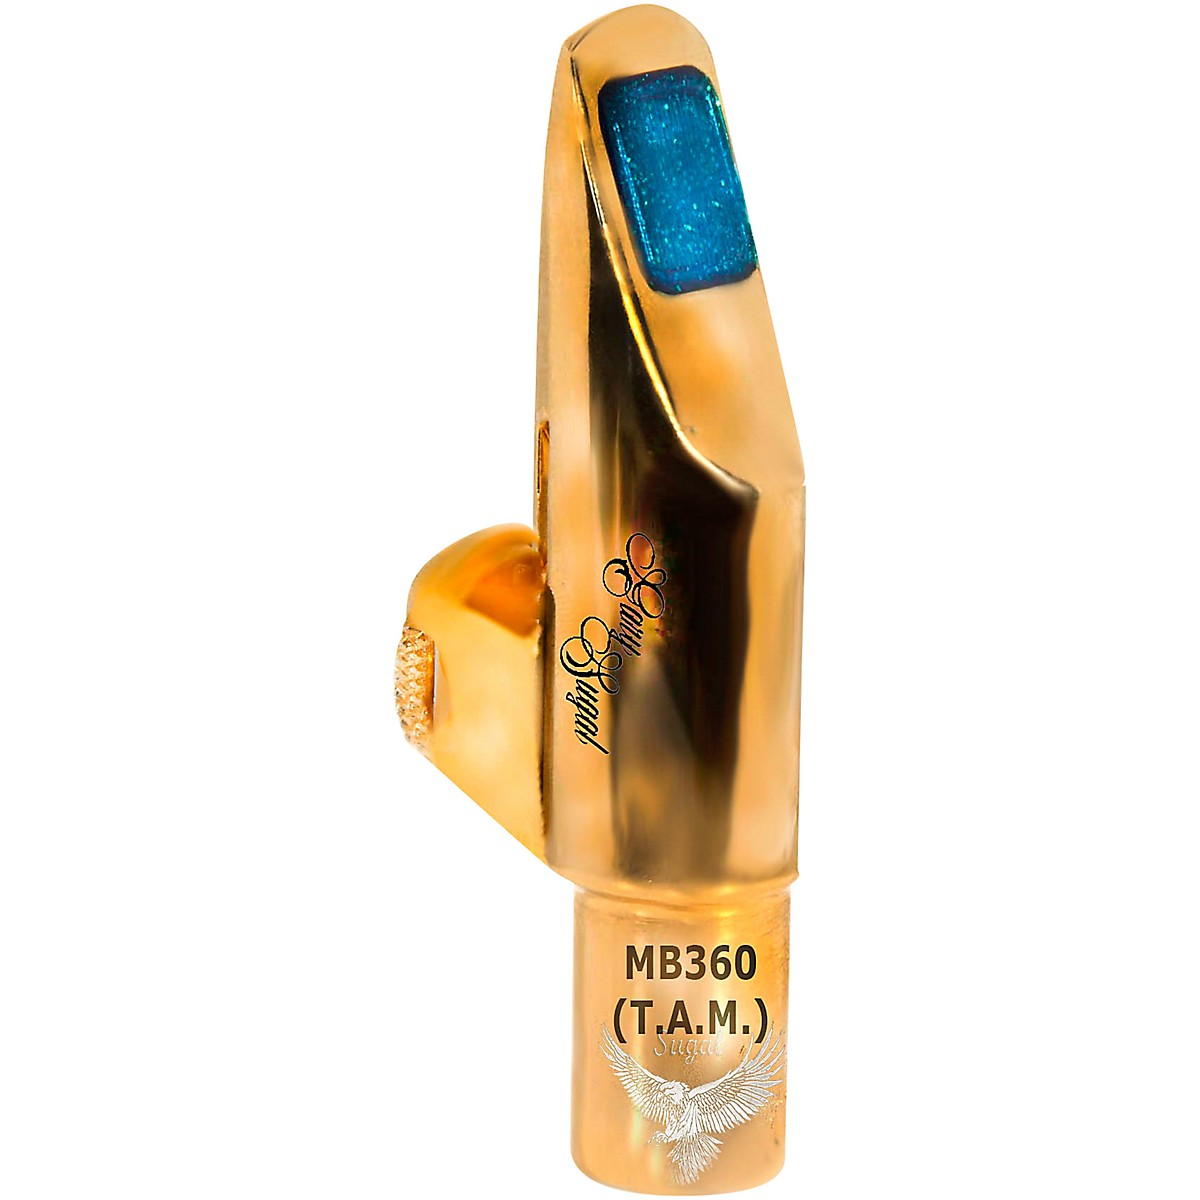 Sugal MB 360 TAM 18 KT HGE Gold Plated Tenor Saxophone Mouthpiece